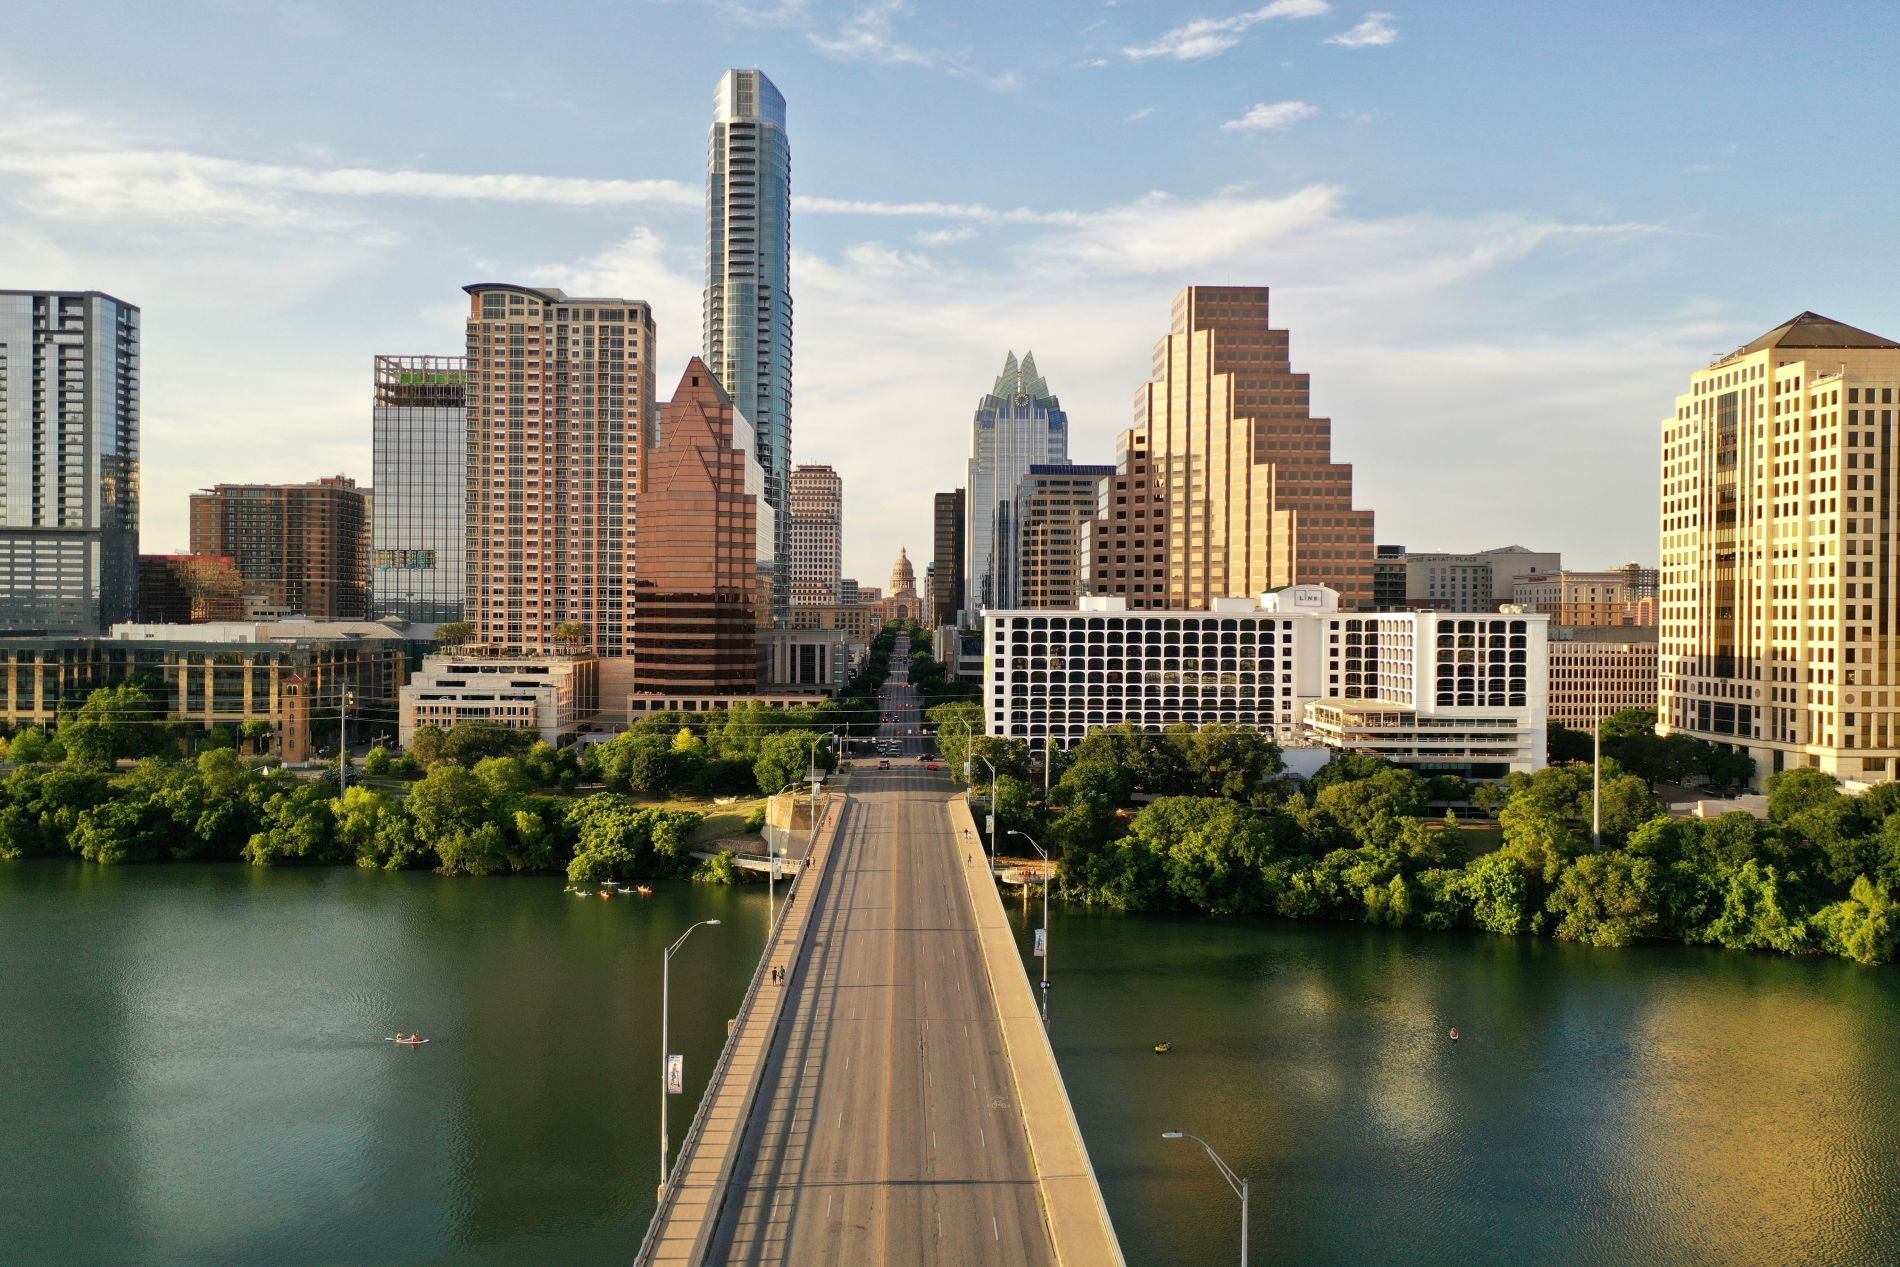 Reisinformatie over Austin